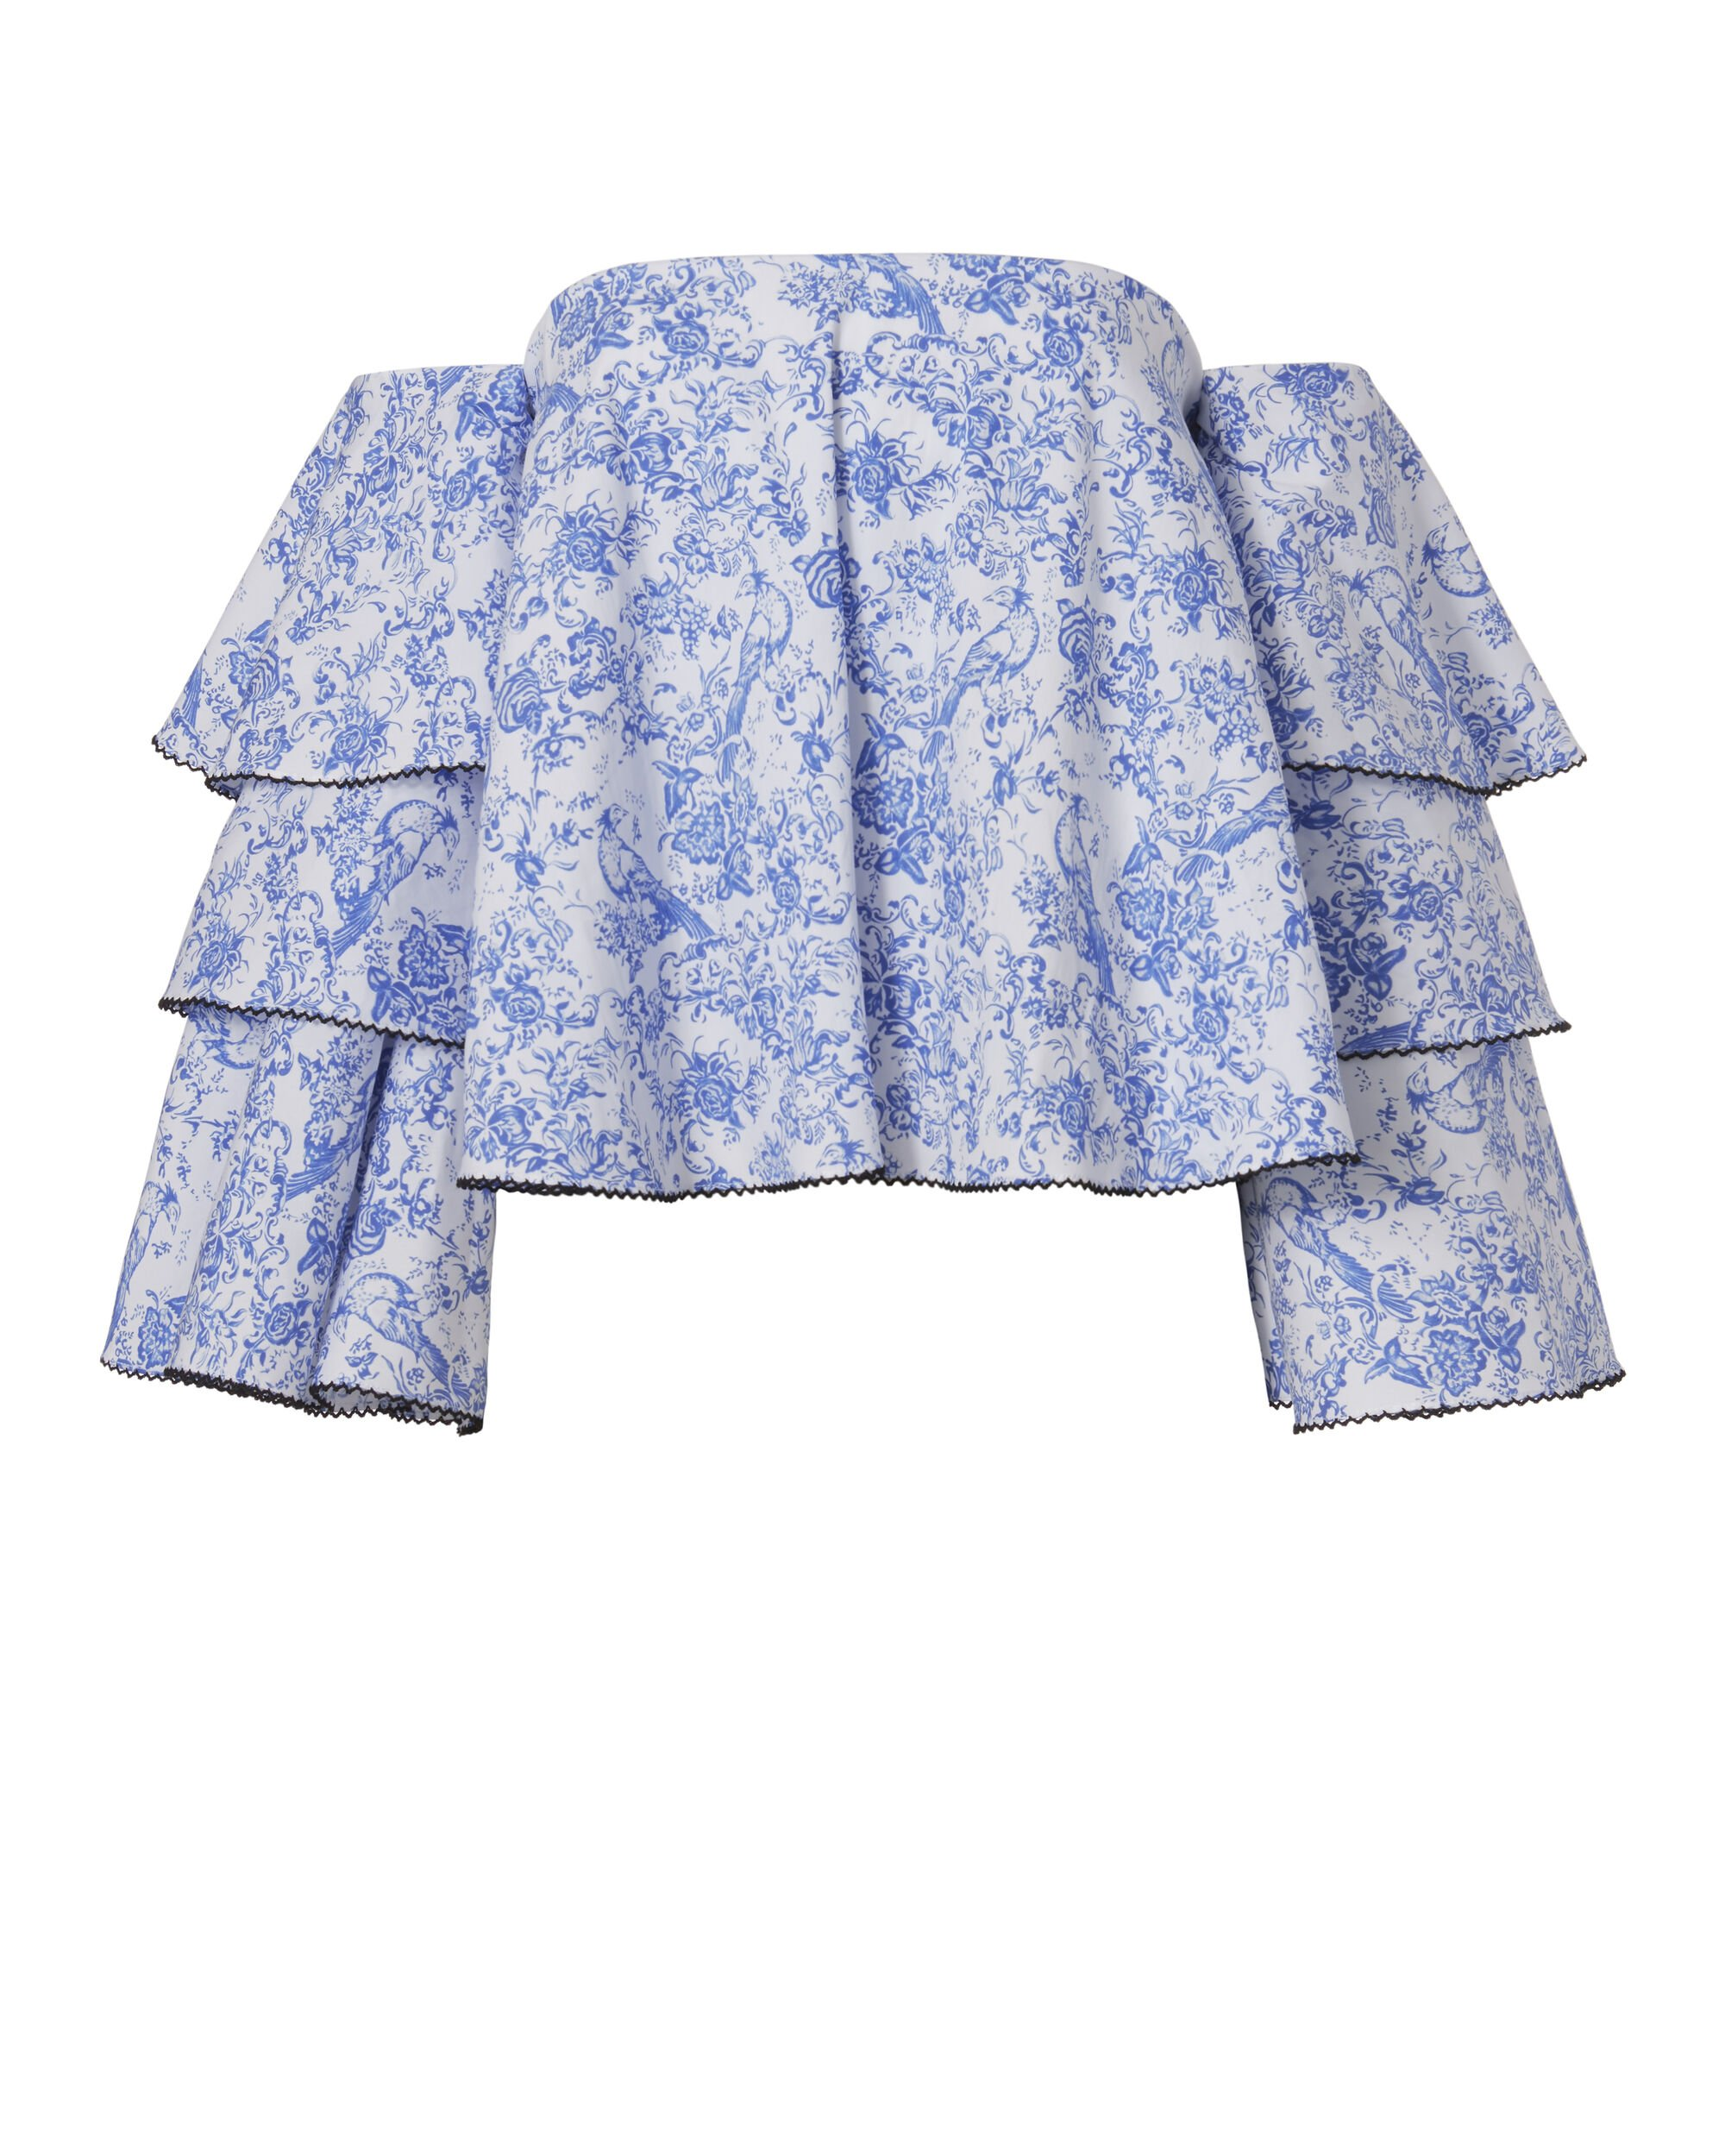 Carmen Blue Toile Off-The-Shoulder Top, BLUE, hi-res